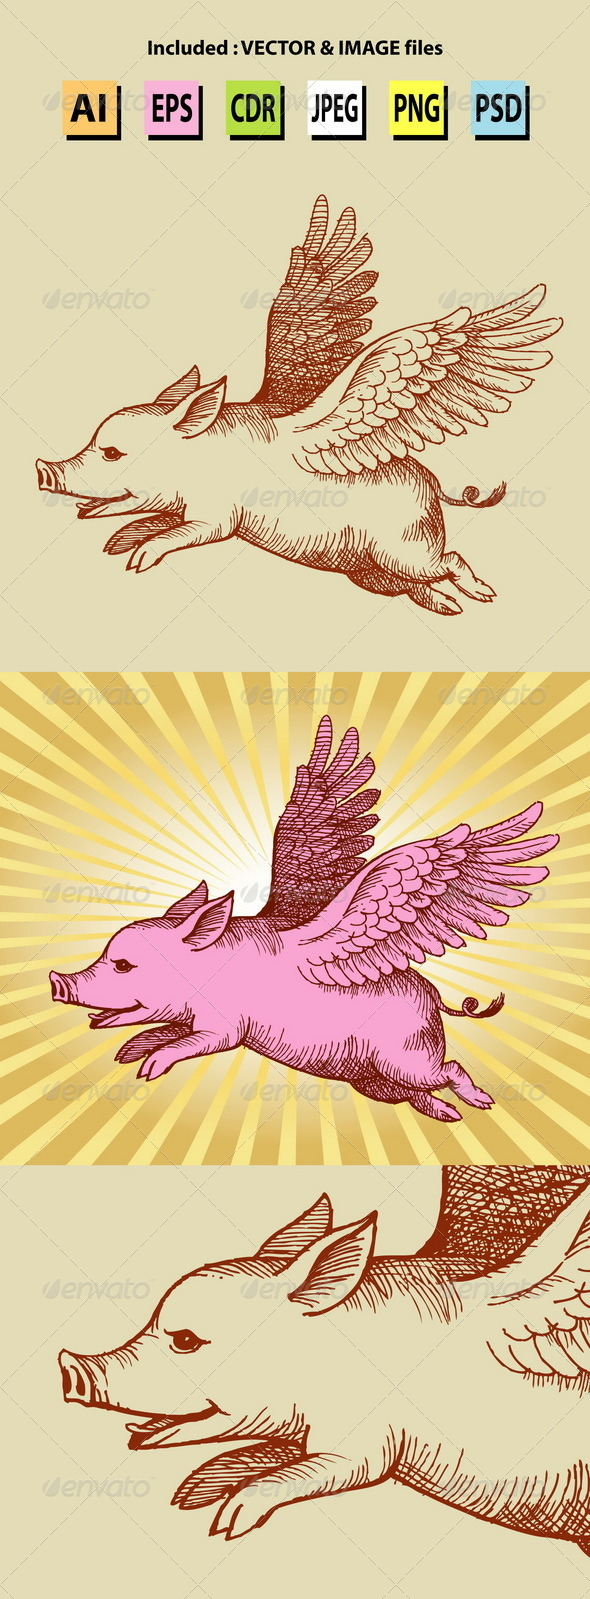 Angel Pig Illustration - Animals Characters